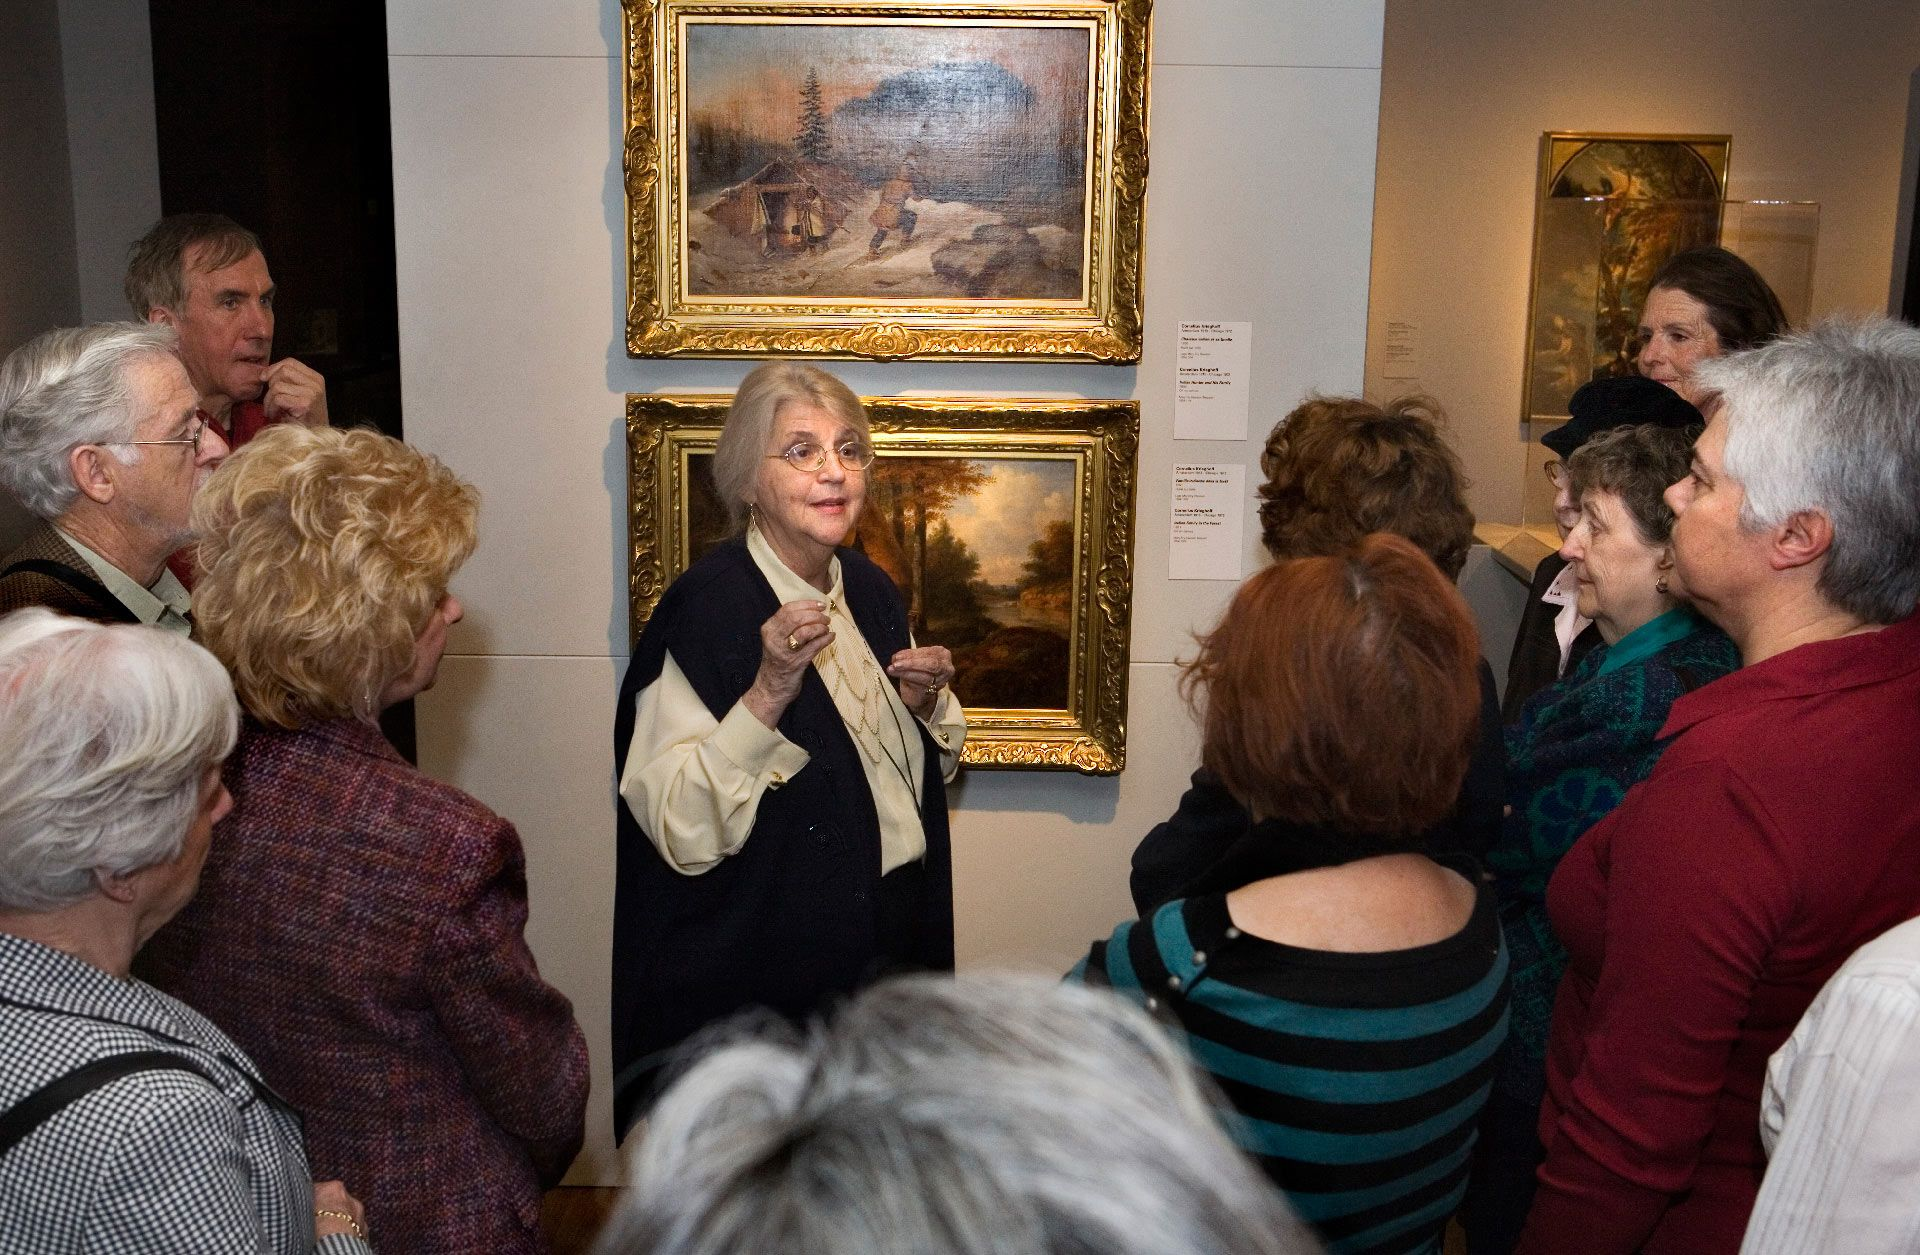 guided tour at the Montreal Museum of Fine Arts